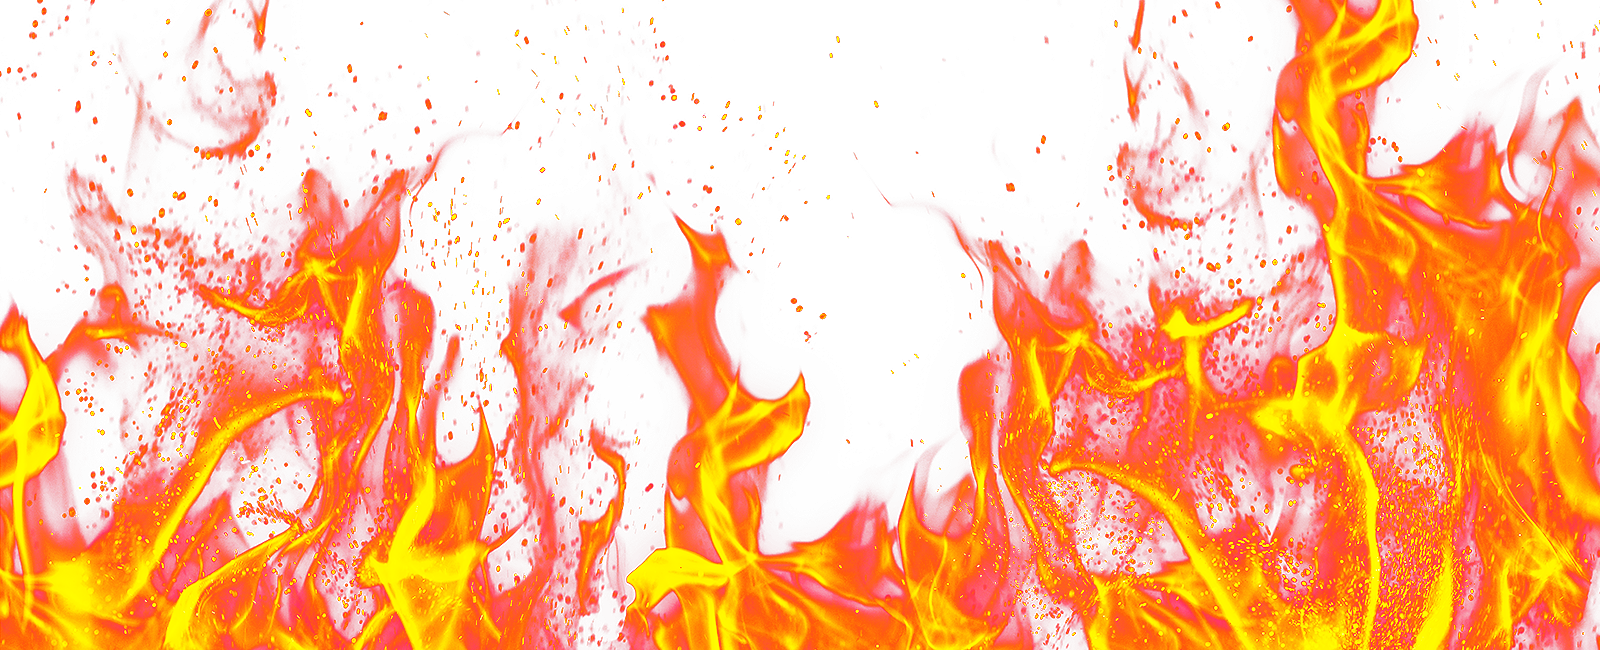 Fire PNG6032.png - Fire PNG Gif